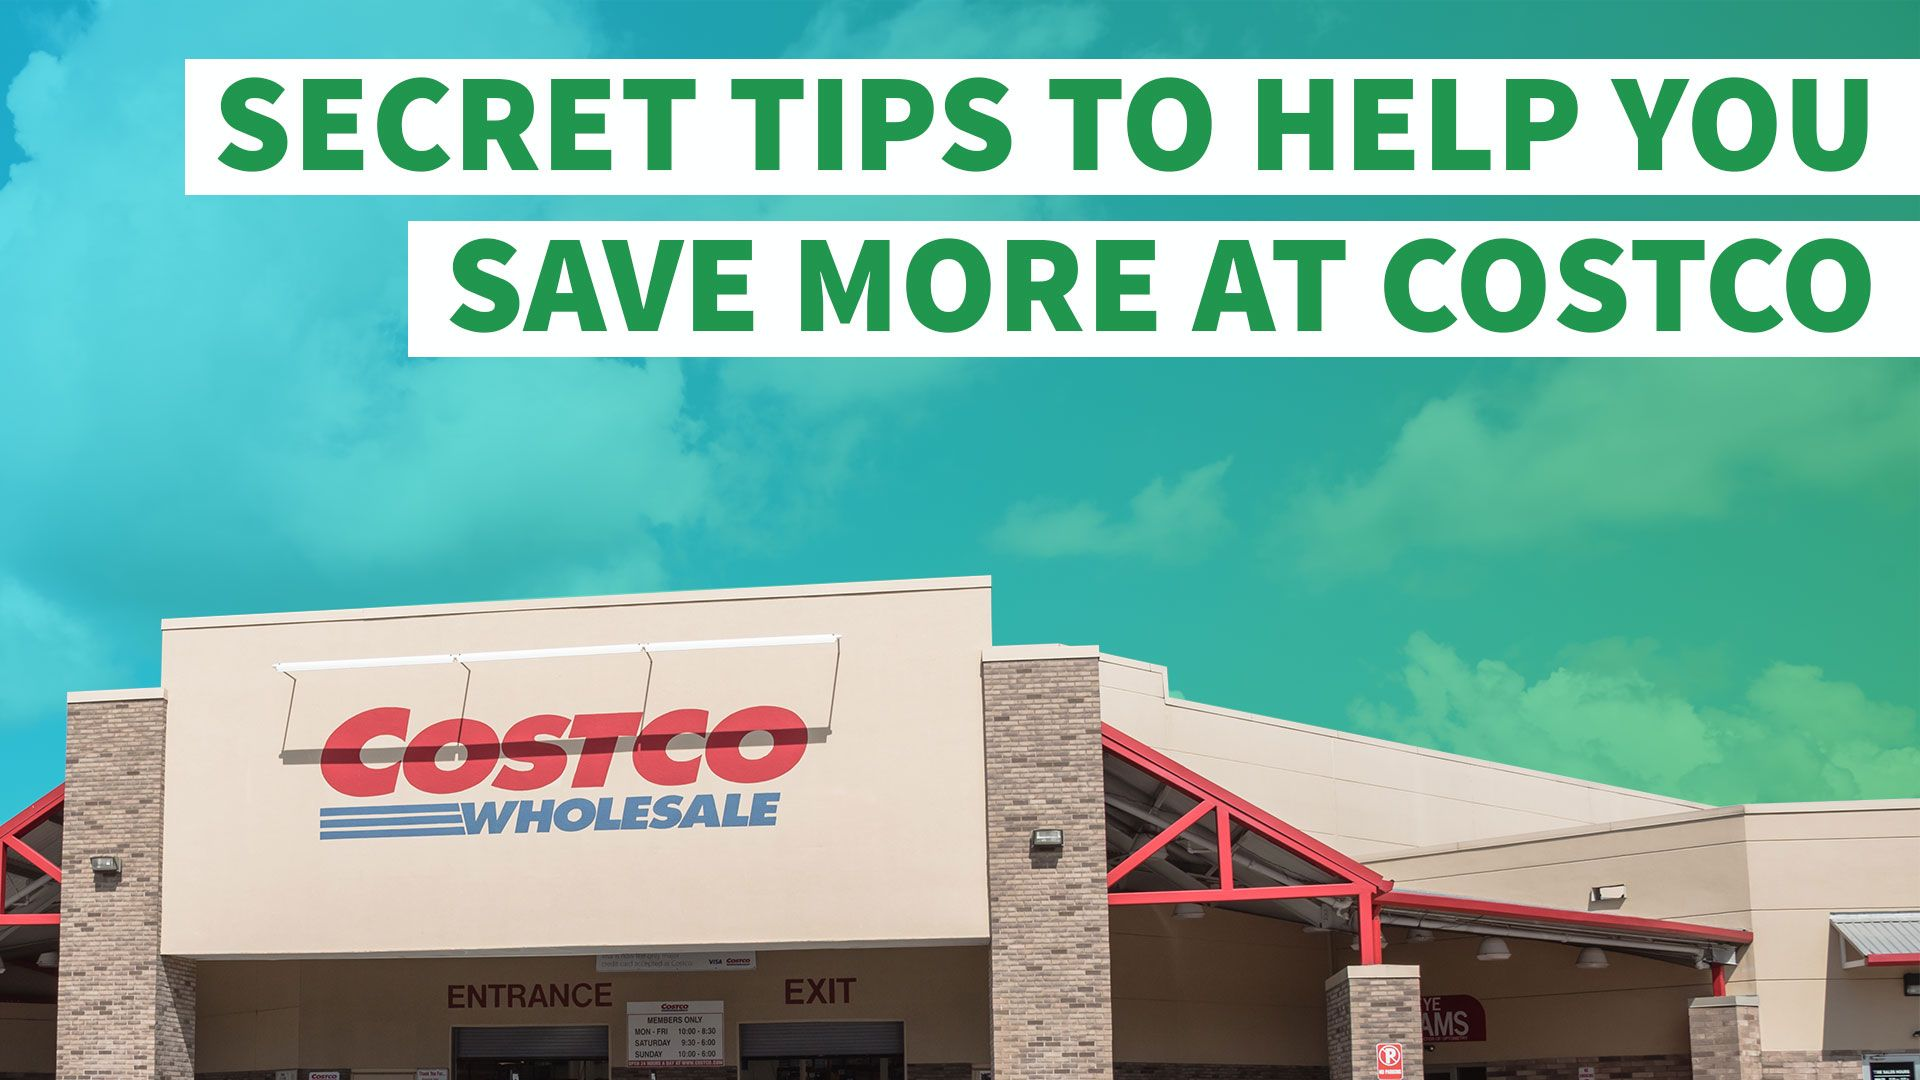 Costco Secrets Revealed Shop Smarter With These Savings Tips